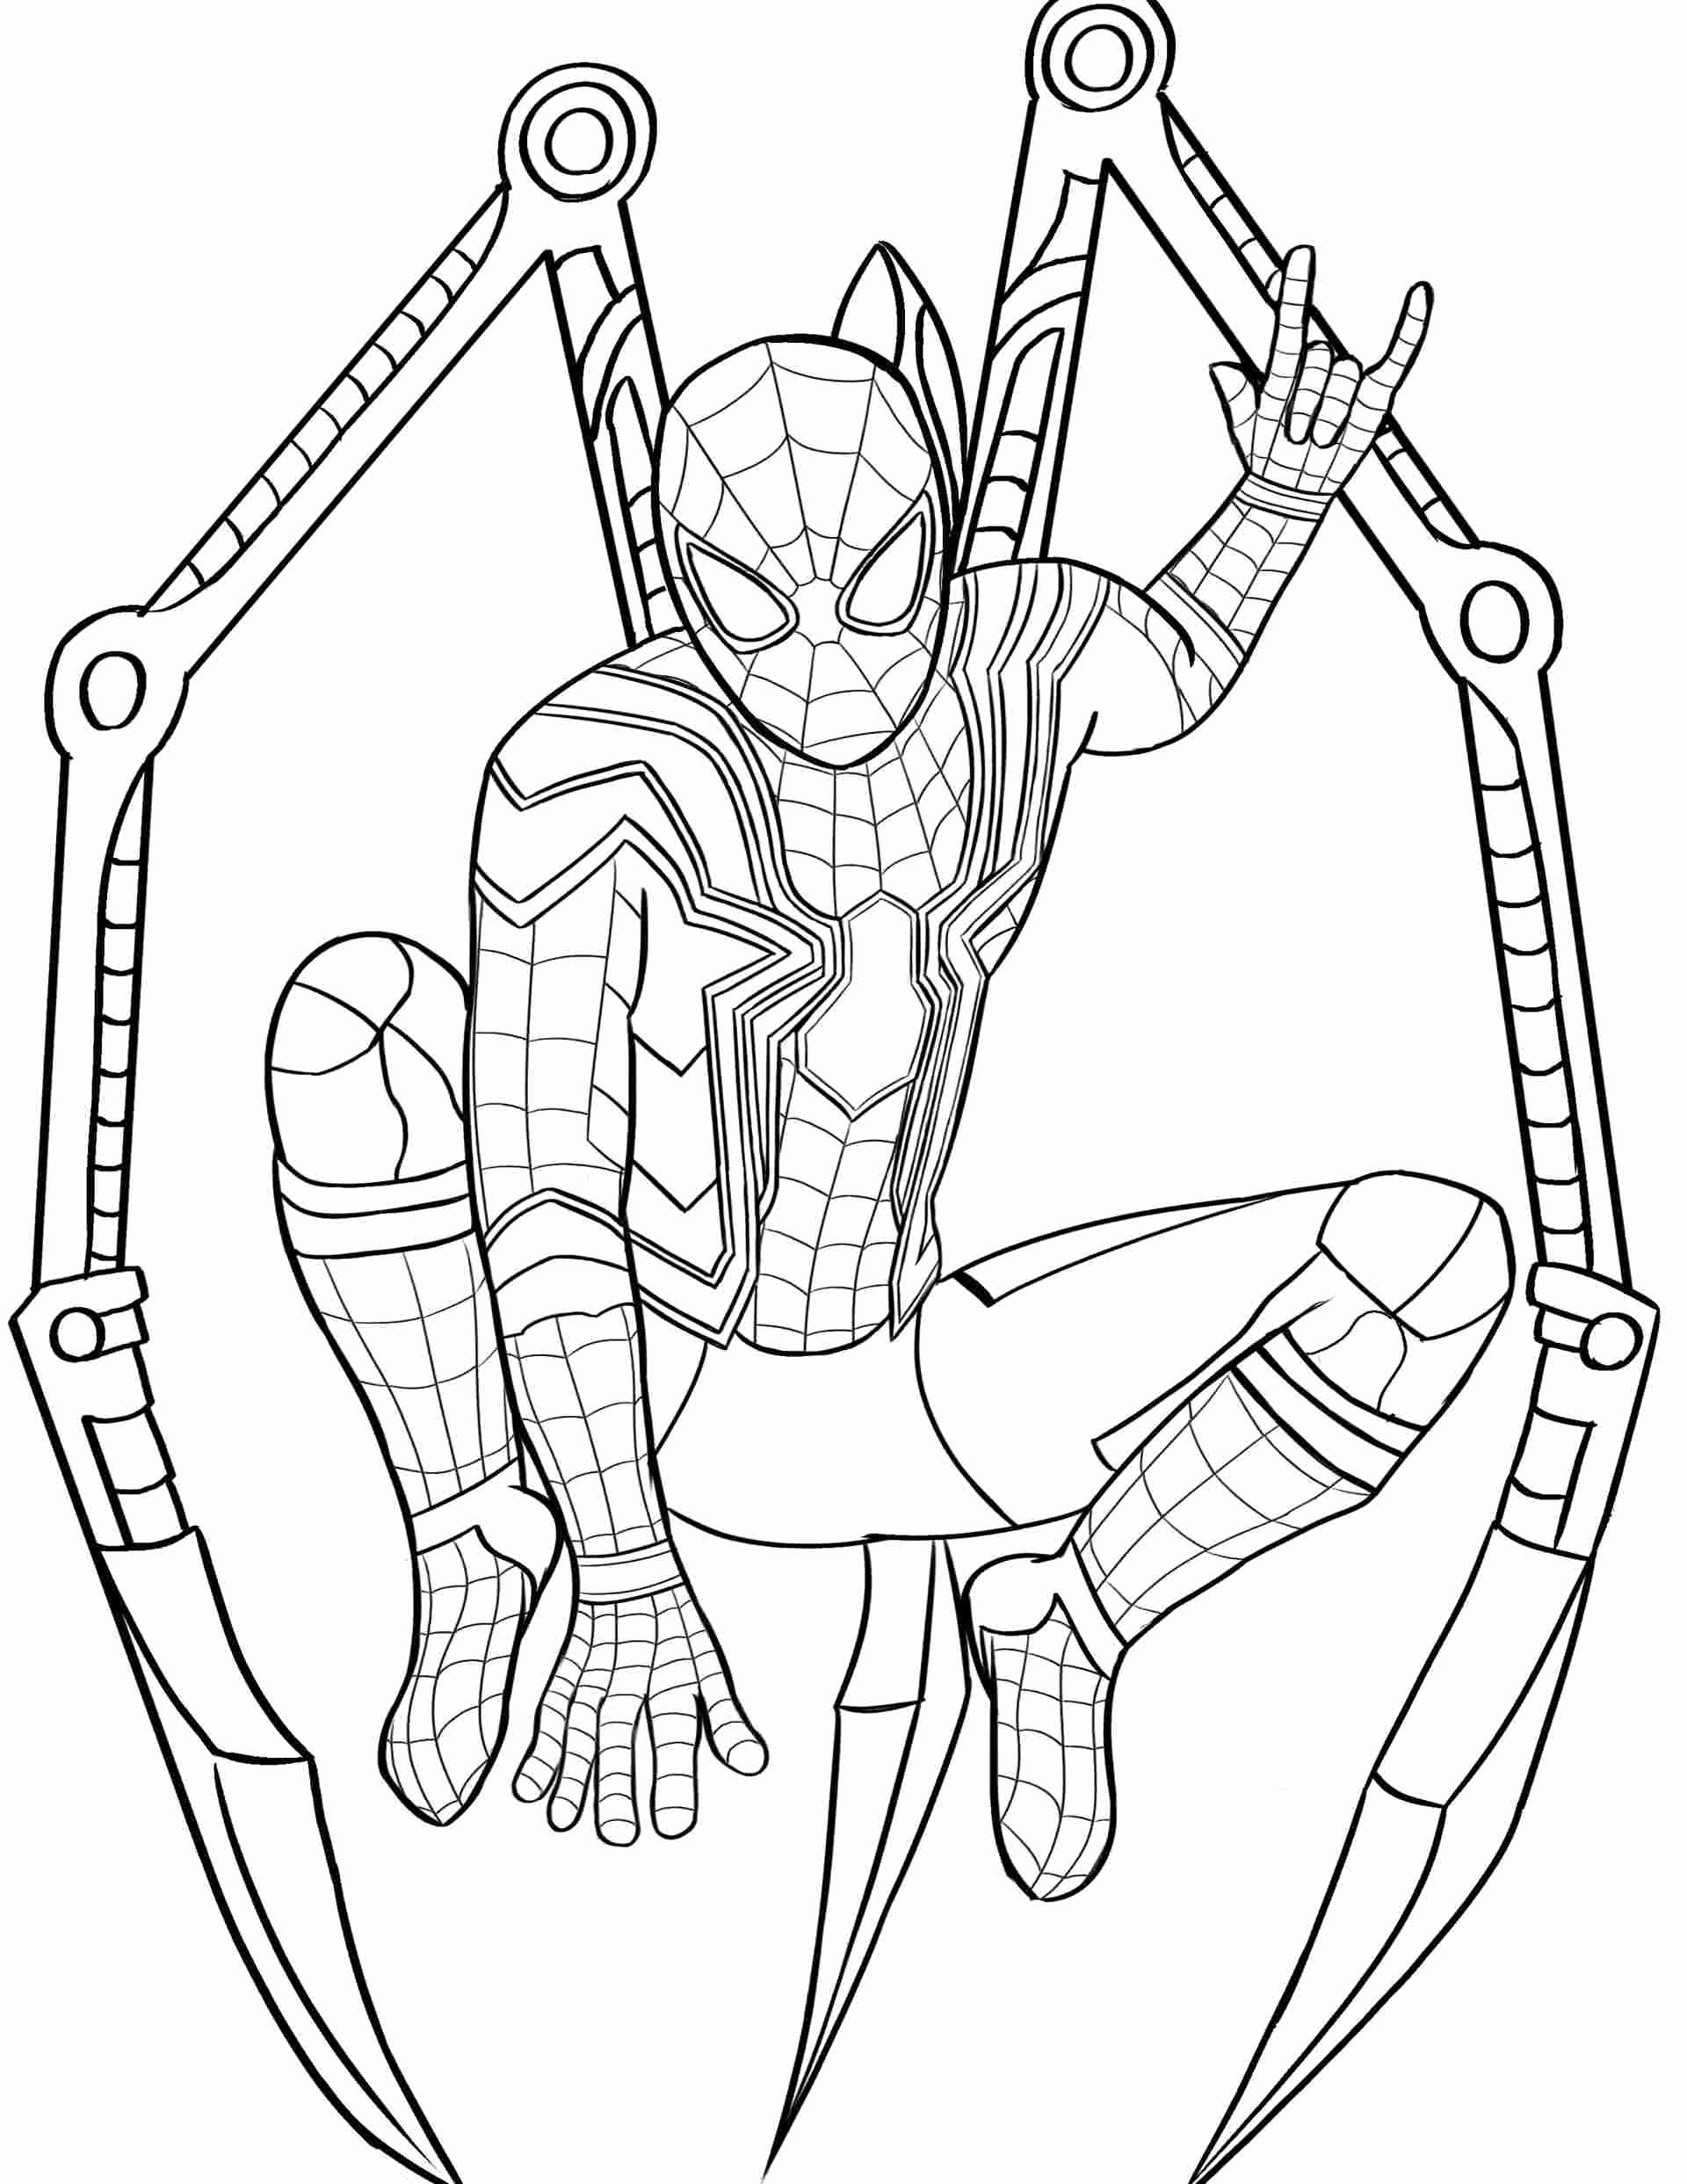 Coloring Pages For Kids Avengers Iron Spider Spider Coloring Page Avengers Coloring Superhero Coloring Pages